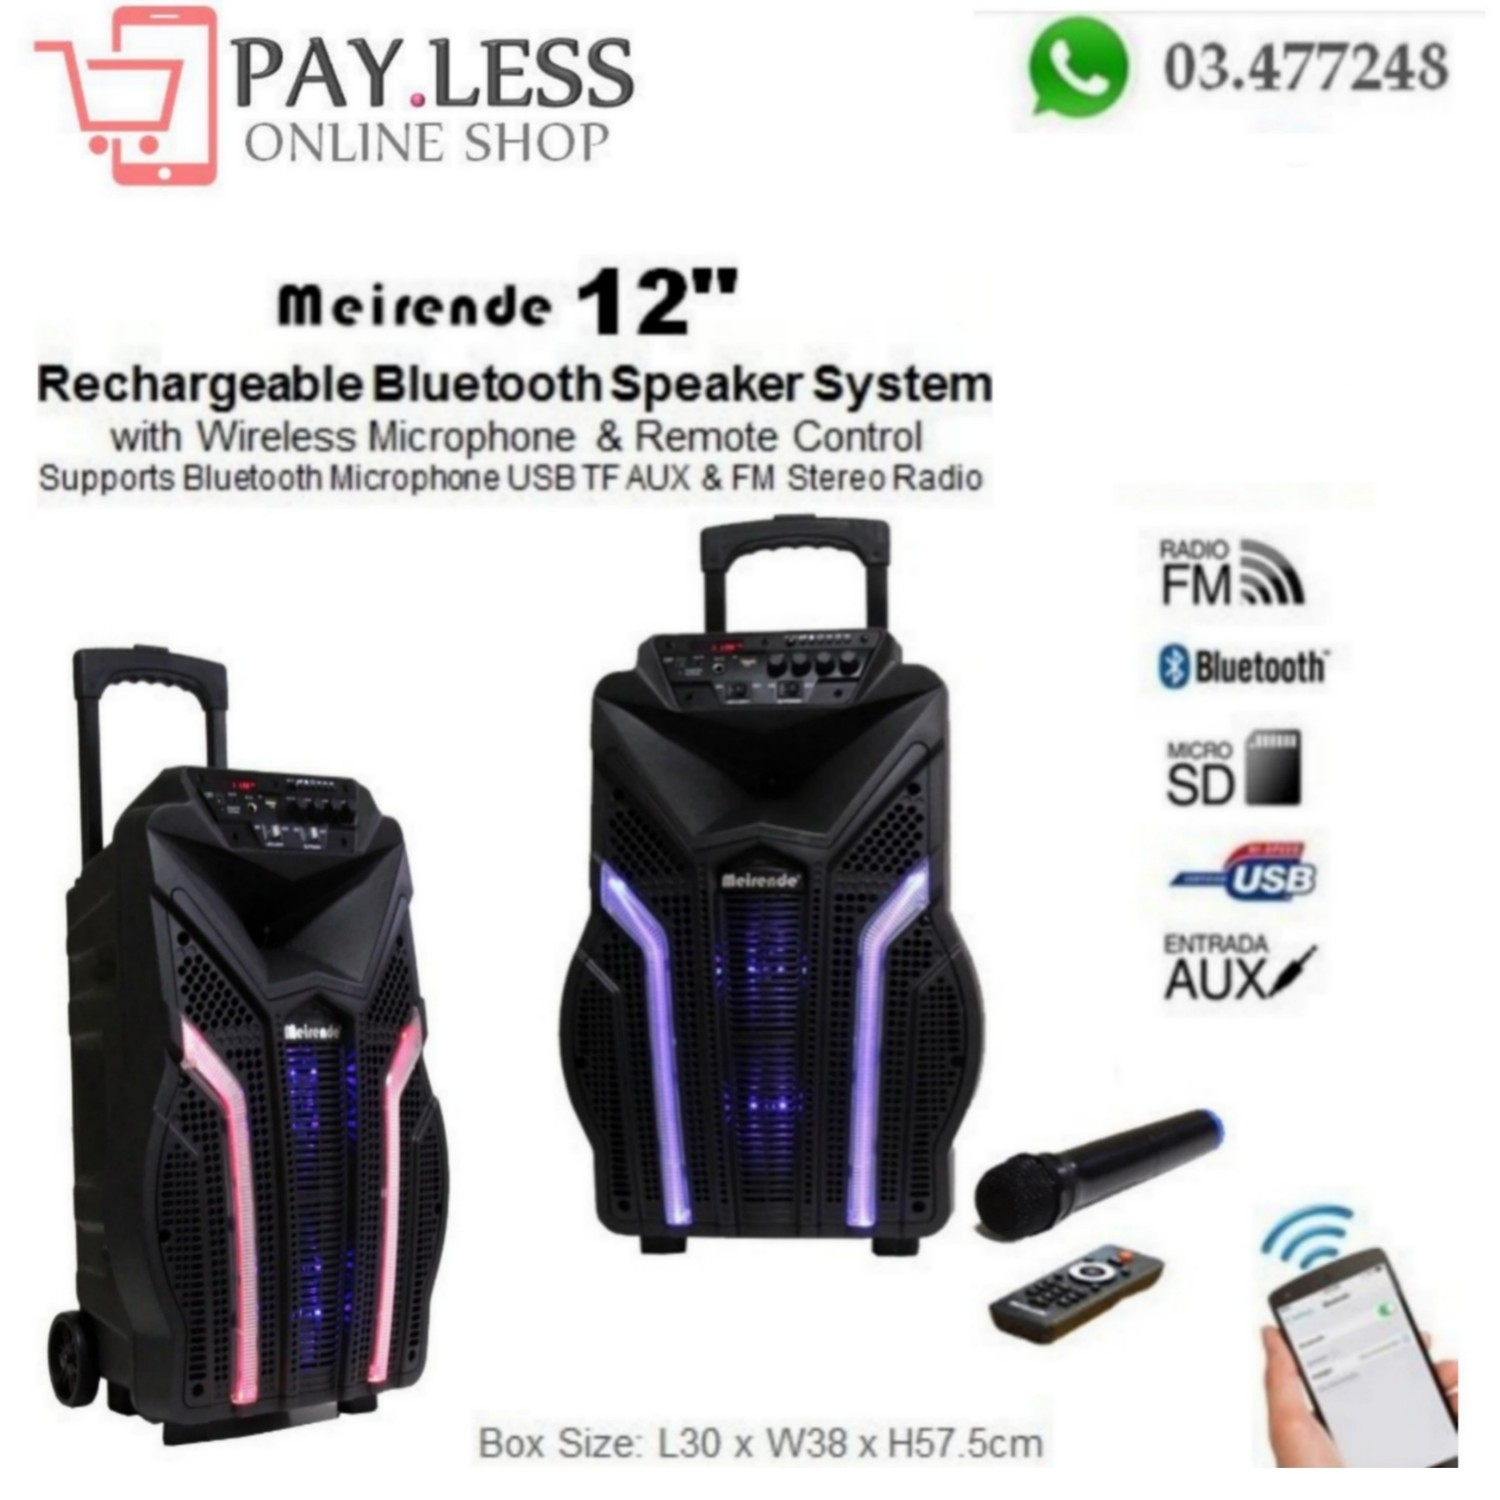 Rechargeable Bluetooth Speaker System 12